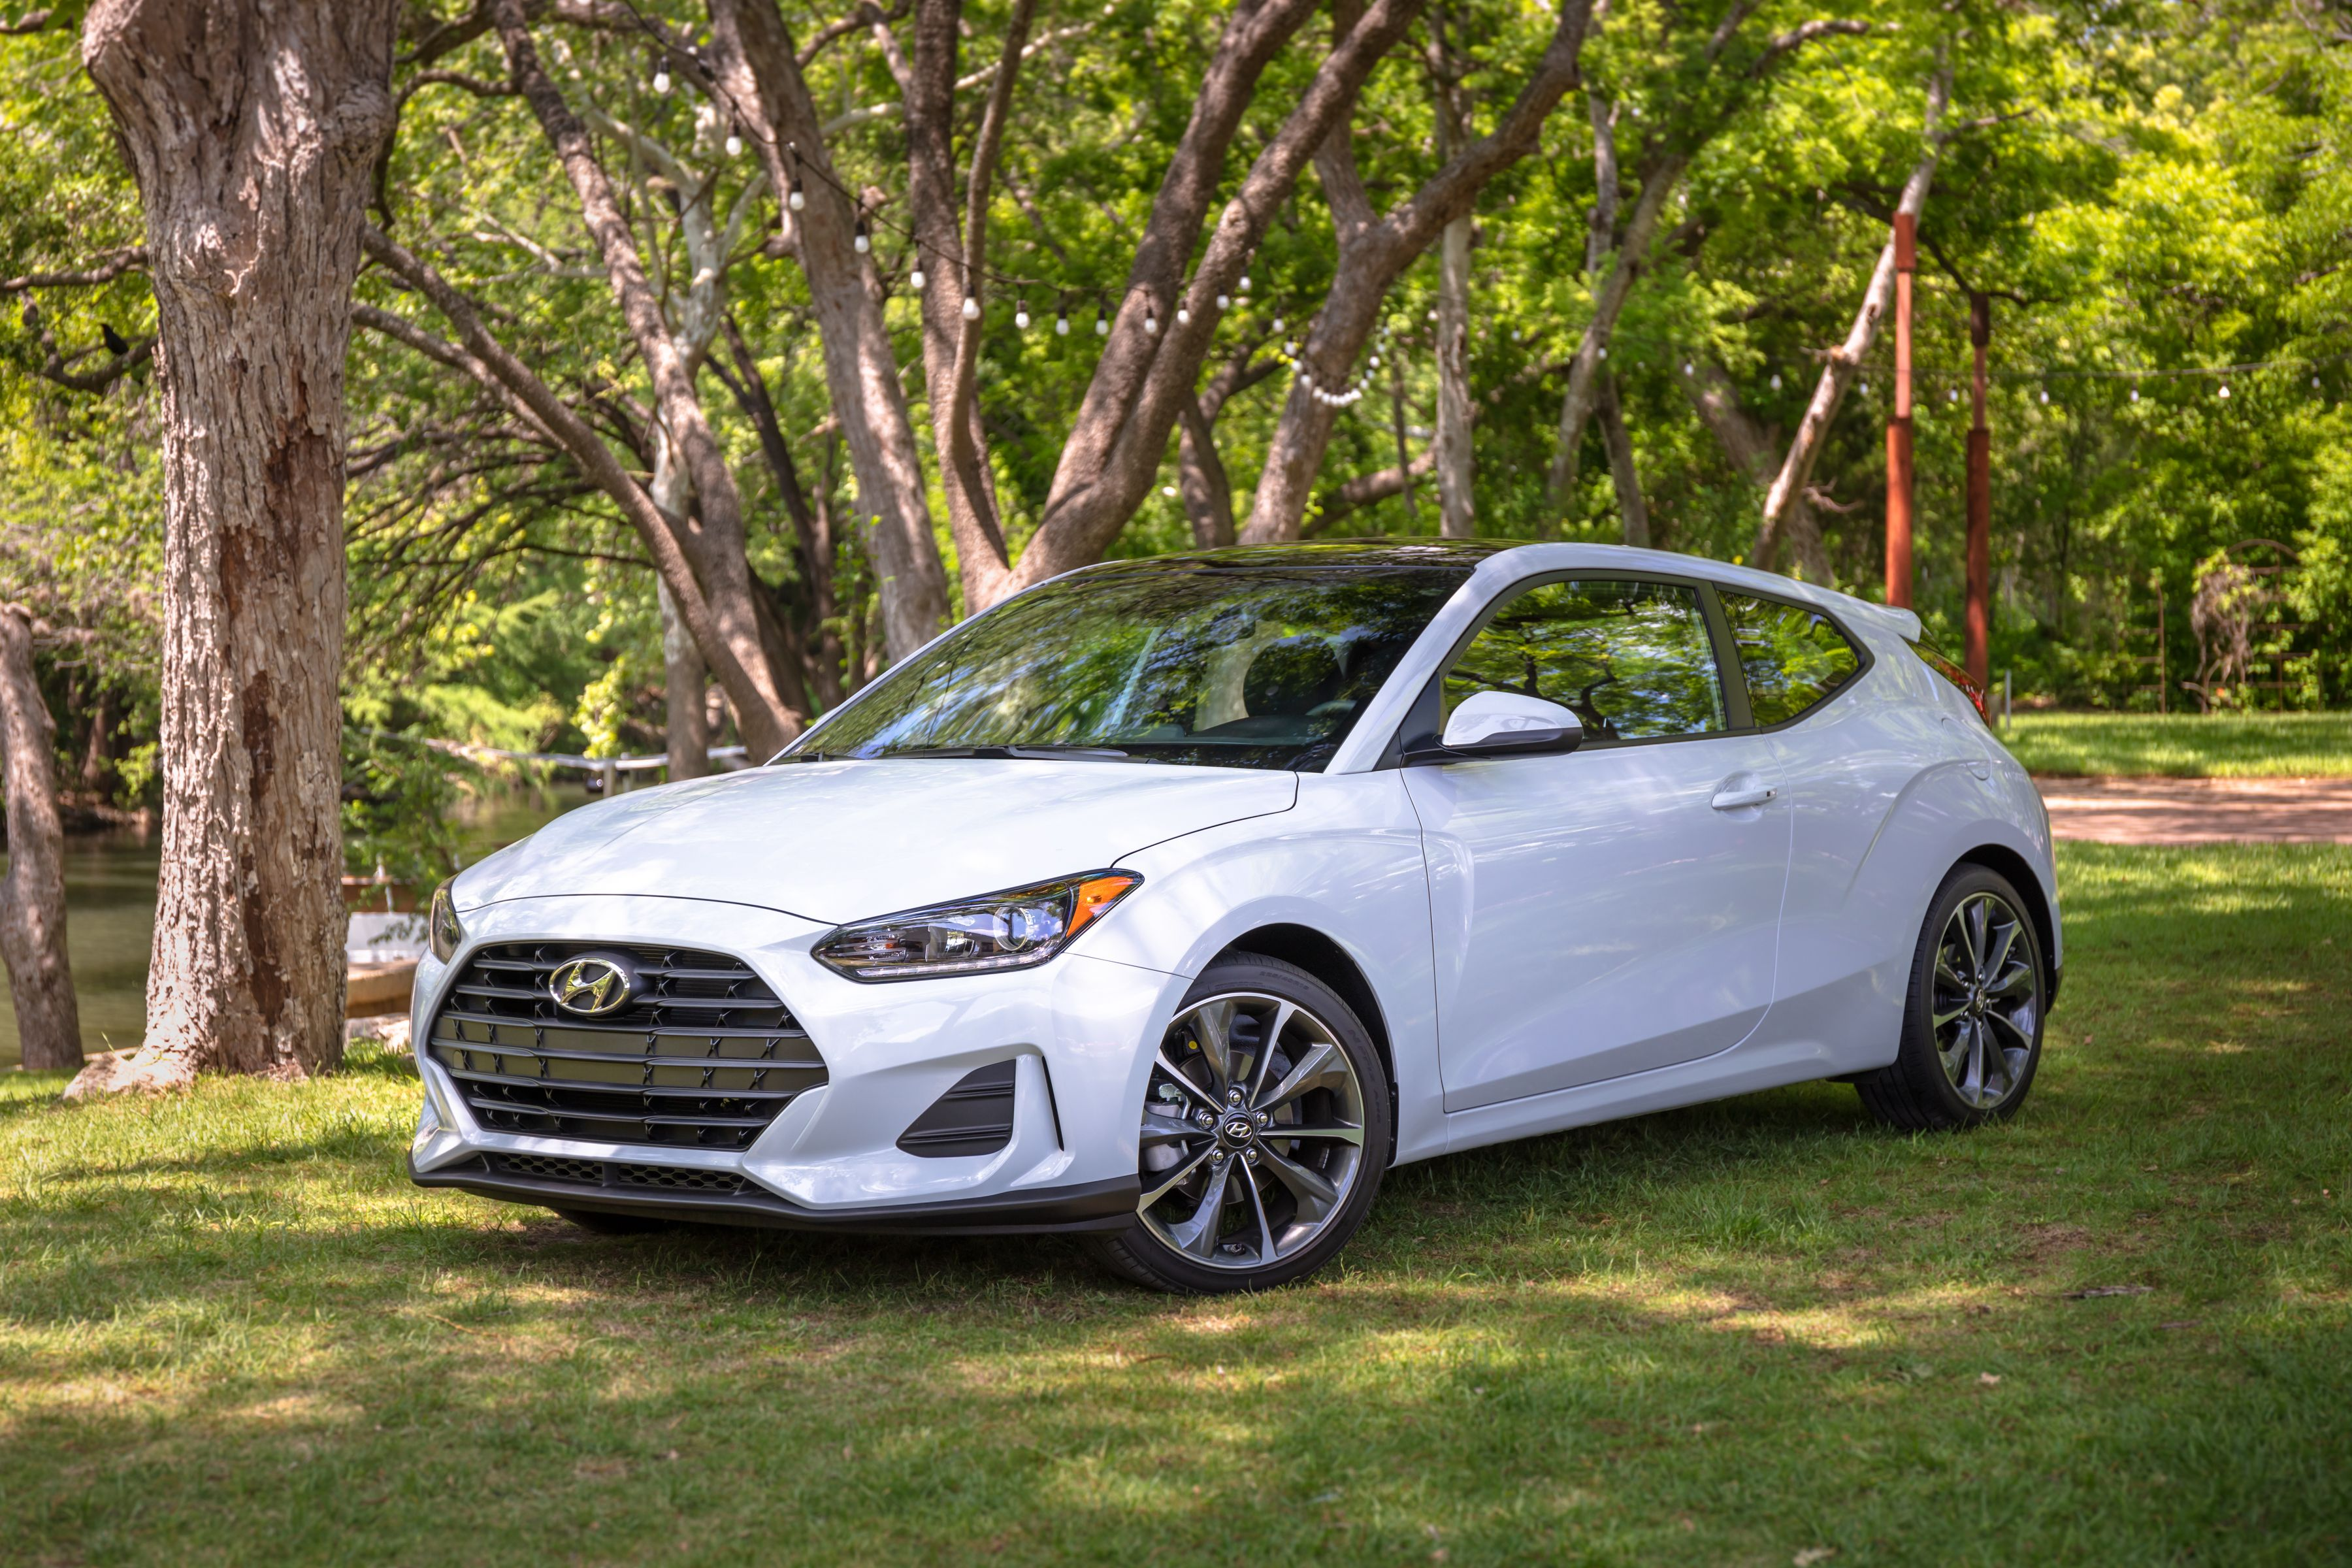 4 Hyundai Veloster Review, Pricing, and Specs